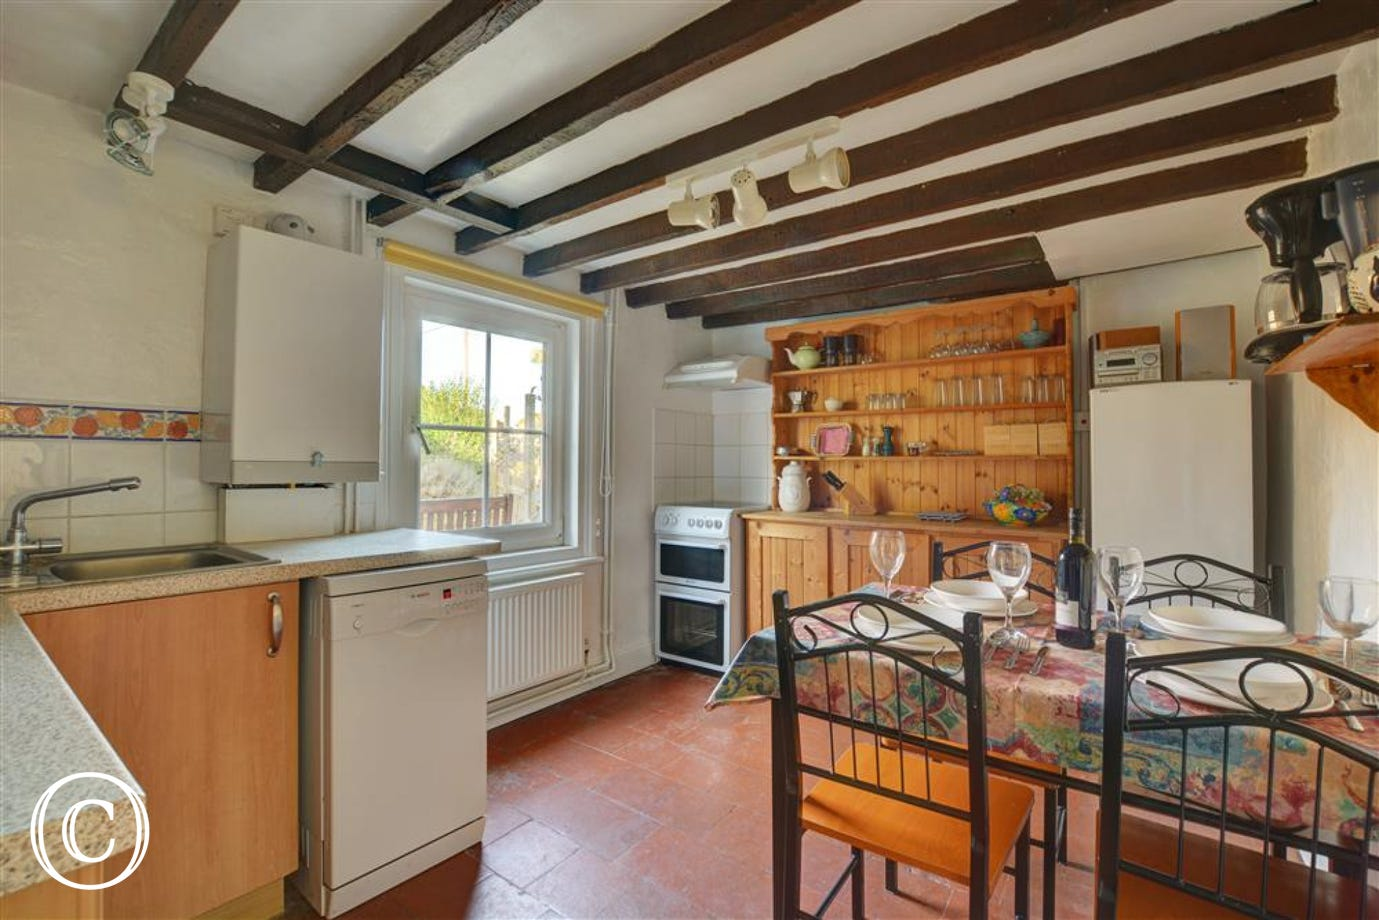 Rustic open beams within the traditional kitchen